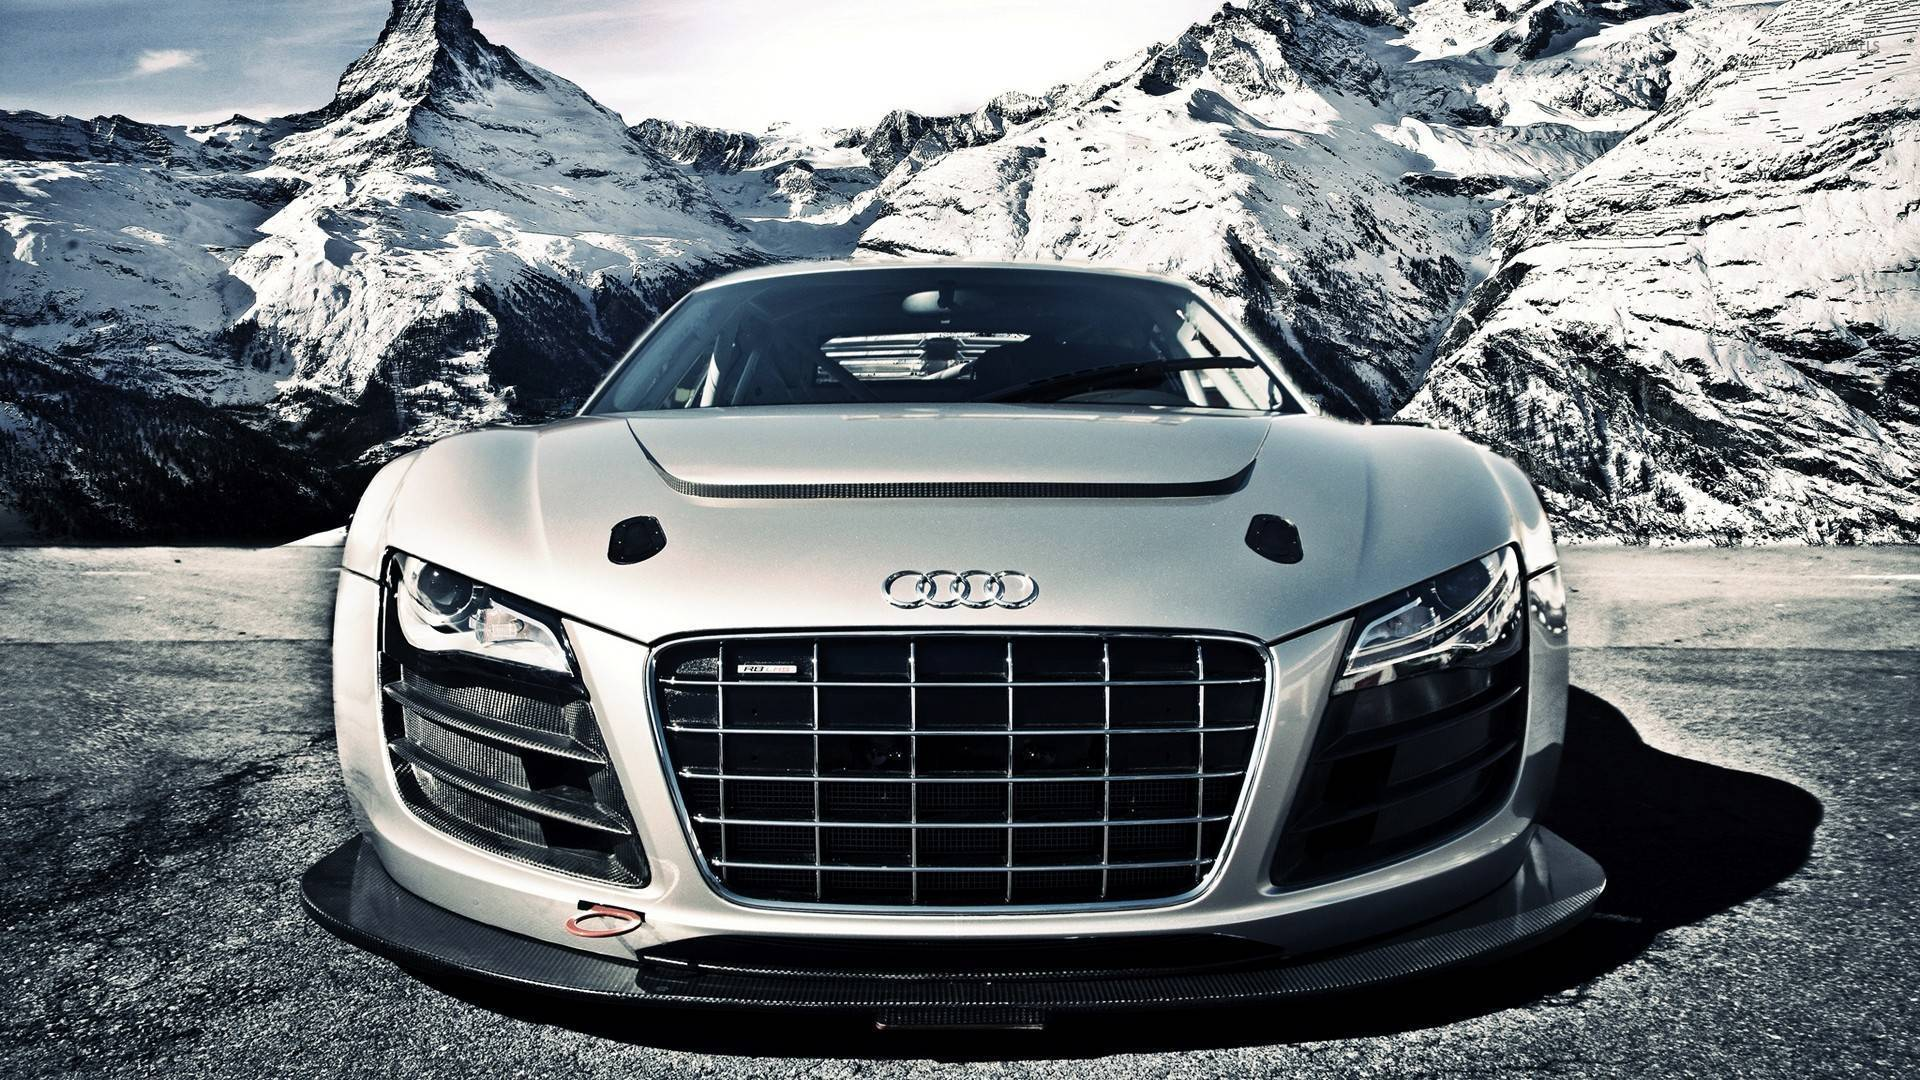 Audi R8 [2] wallpaper - Car wallpapers - #26356